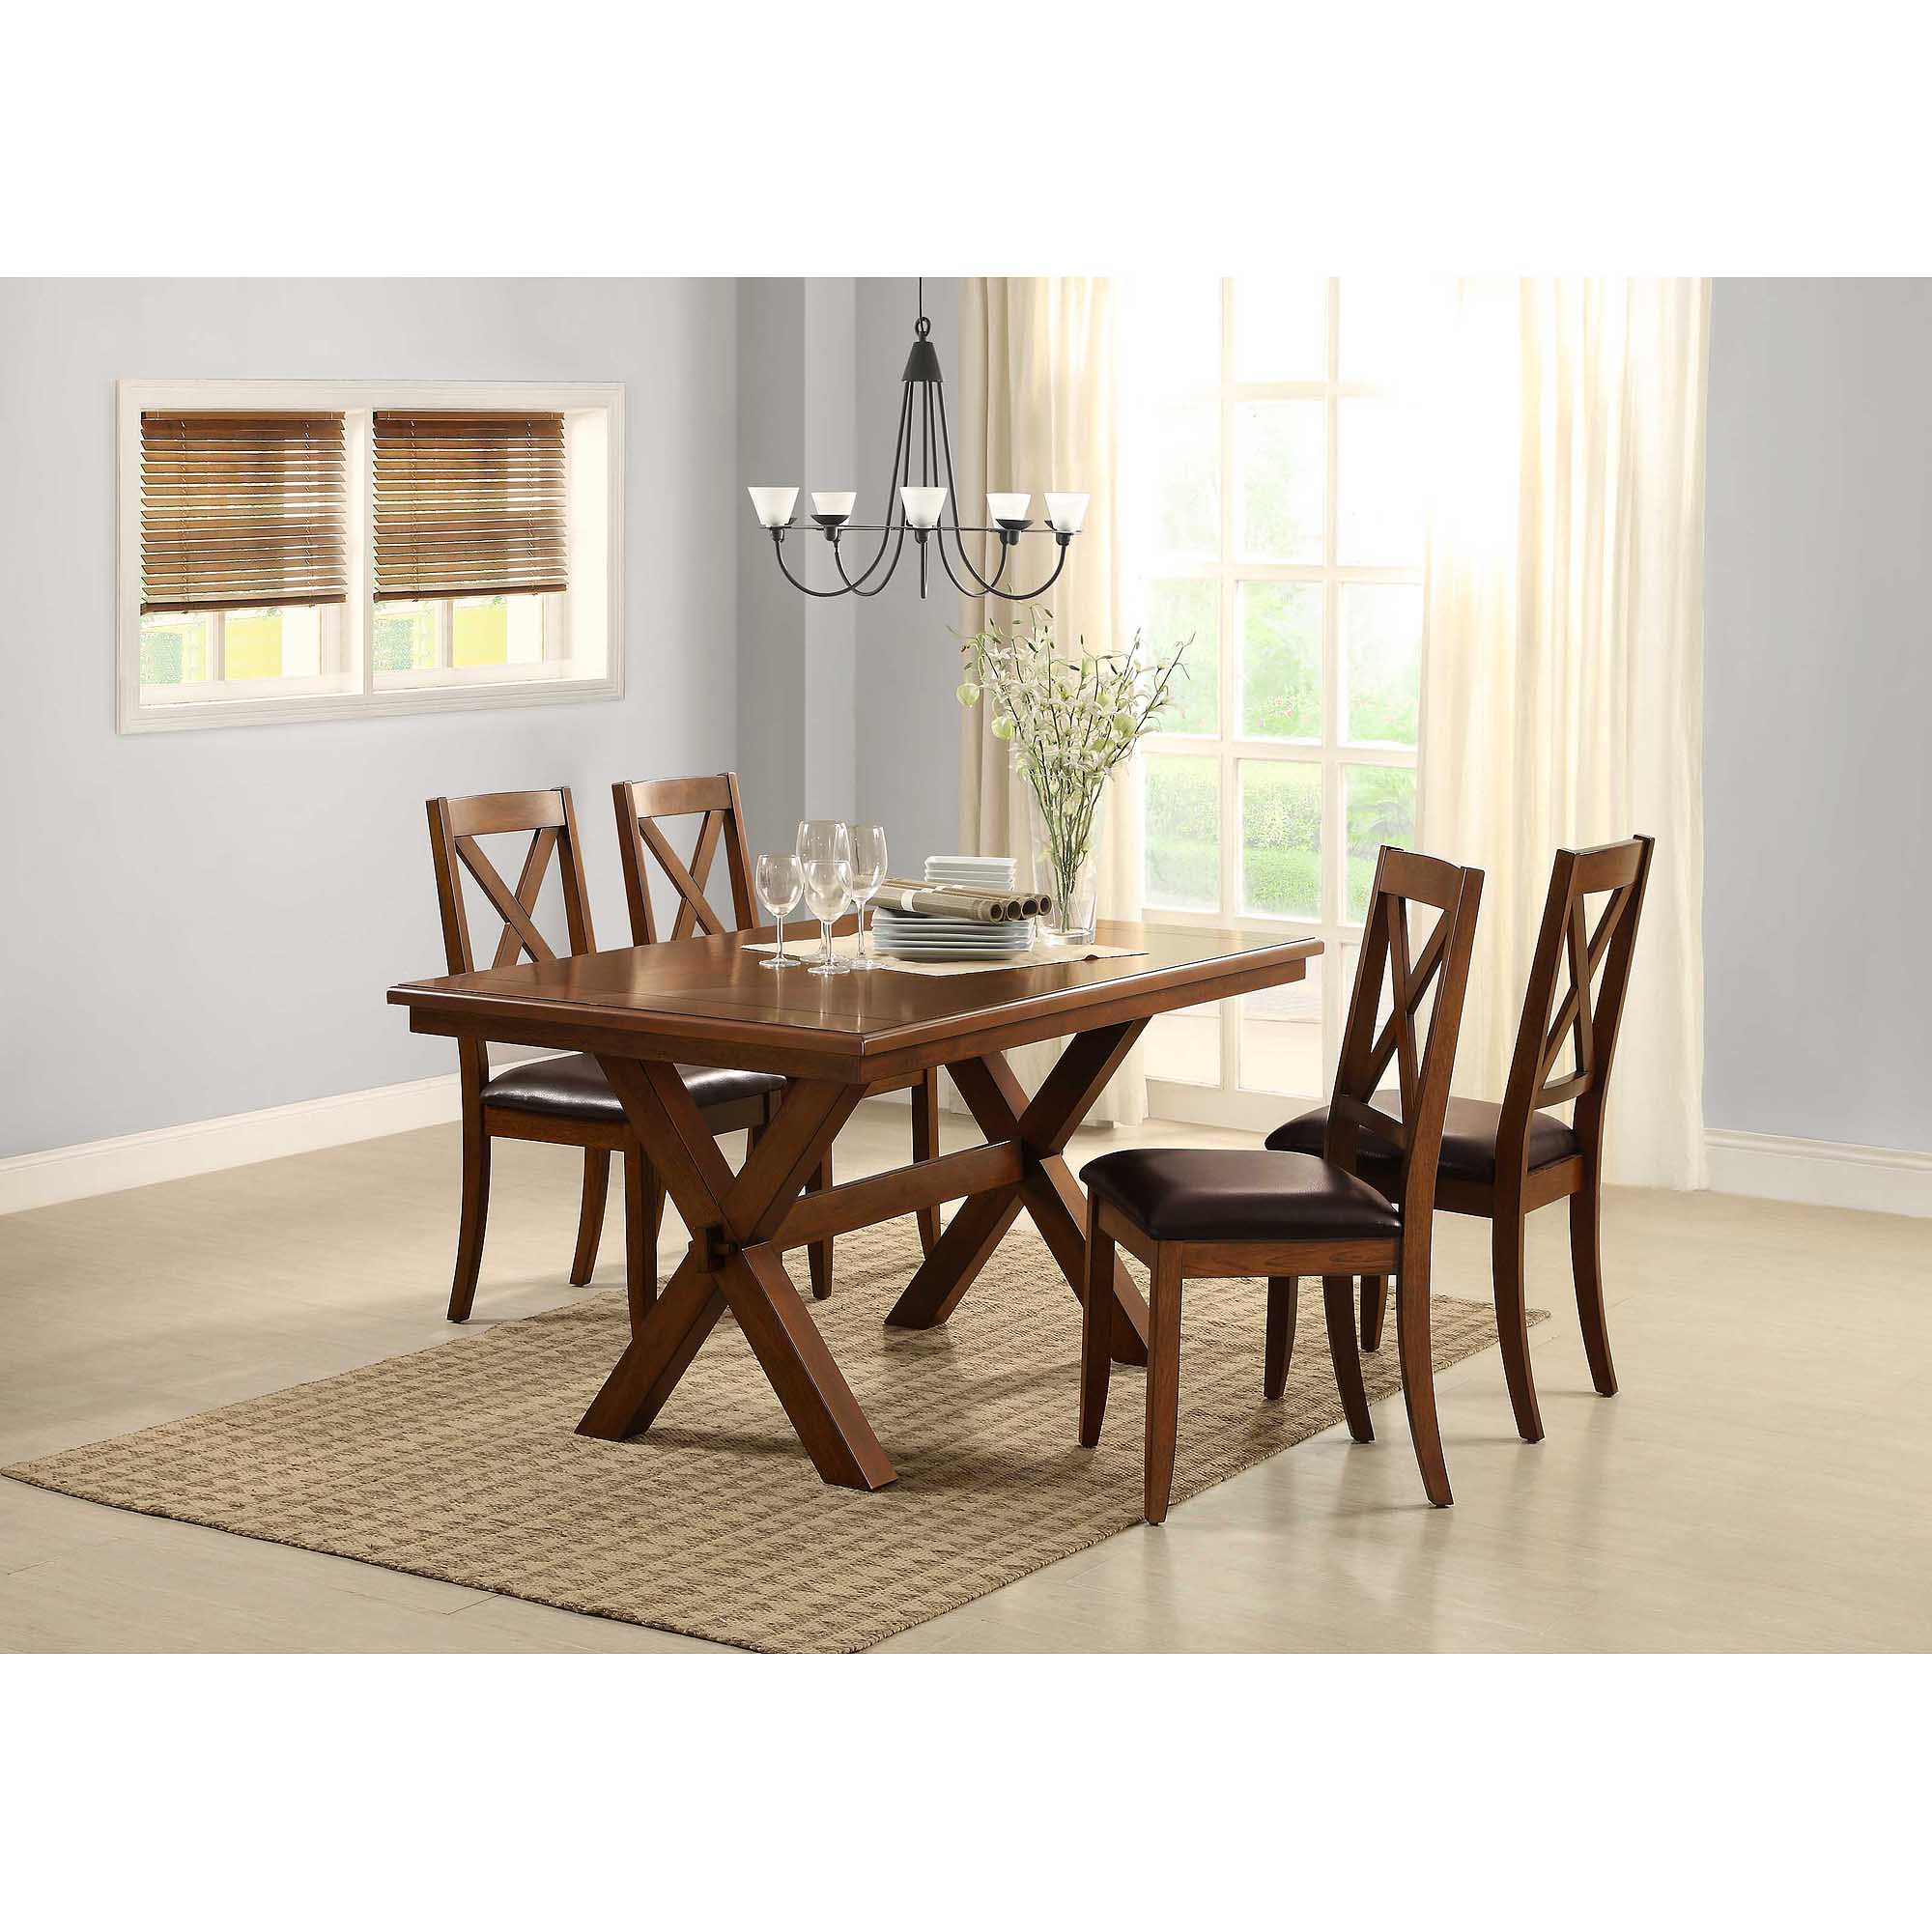 Better Homes and Gardens Maddox Crossing Dining Table  Brown   Walmart com. Better Homes and Gardens Maddox Crossing Dining Table  Brown